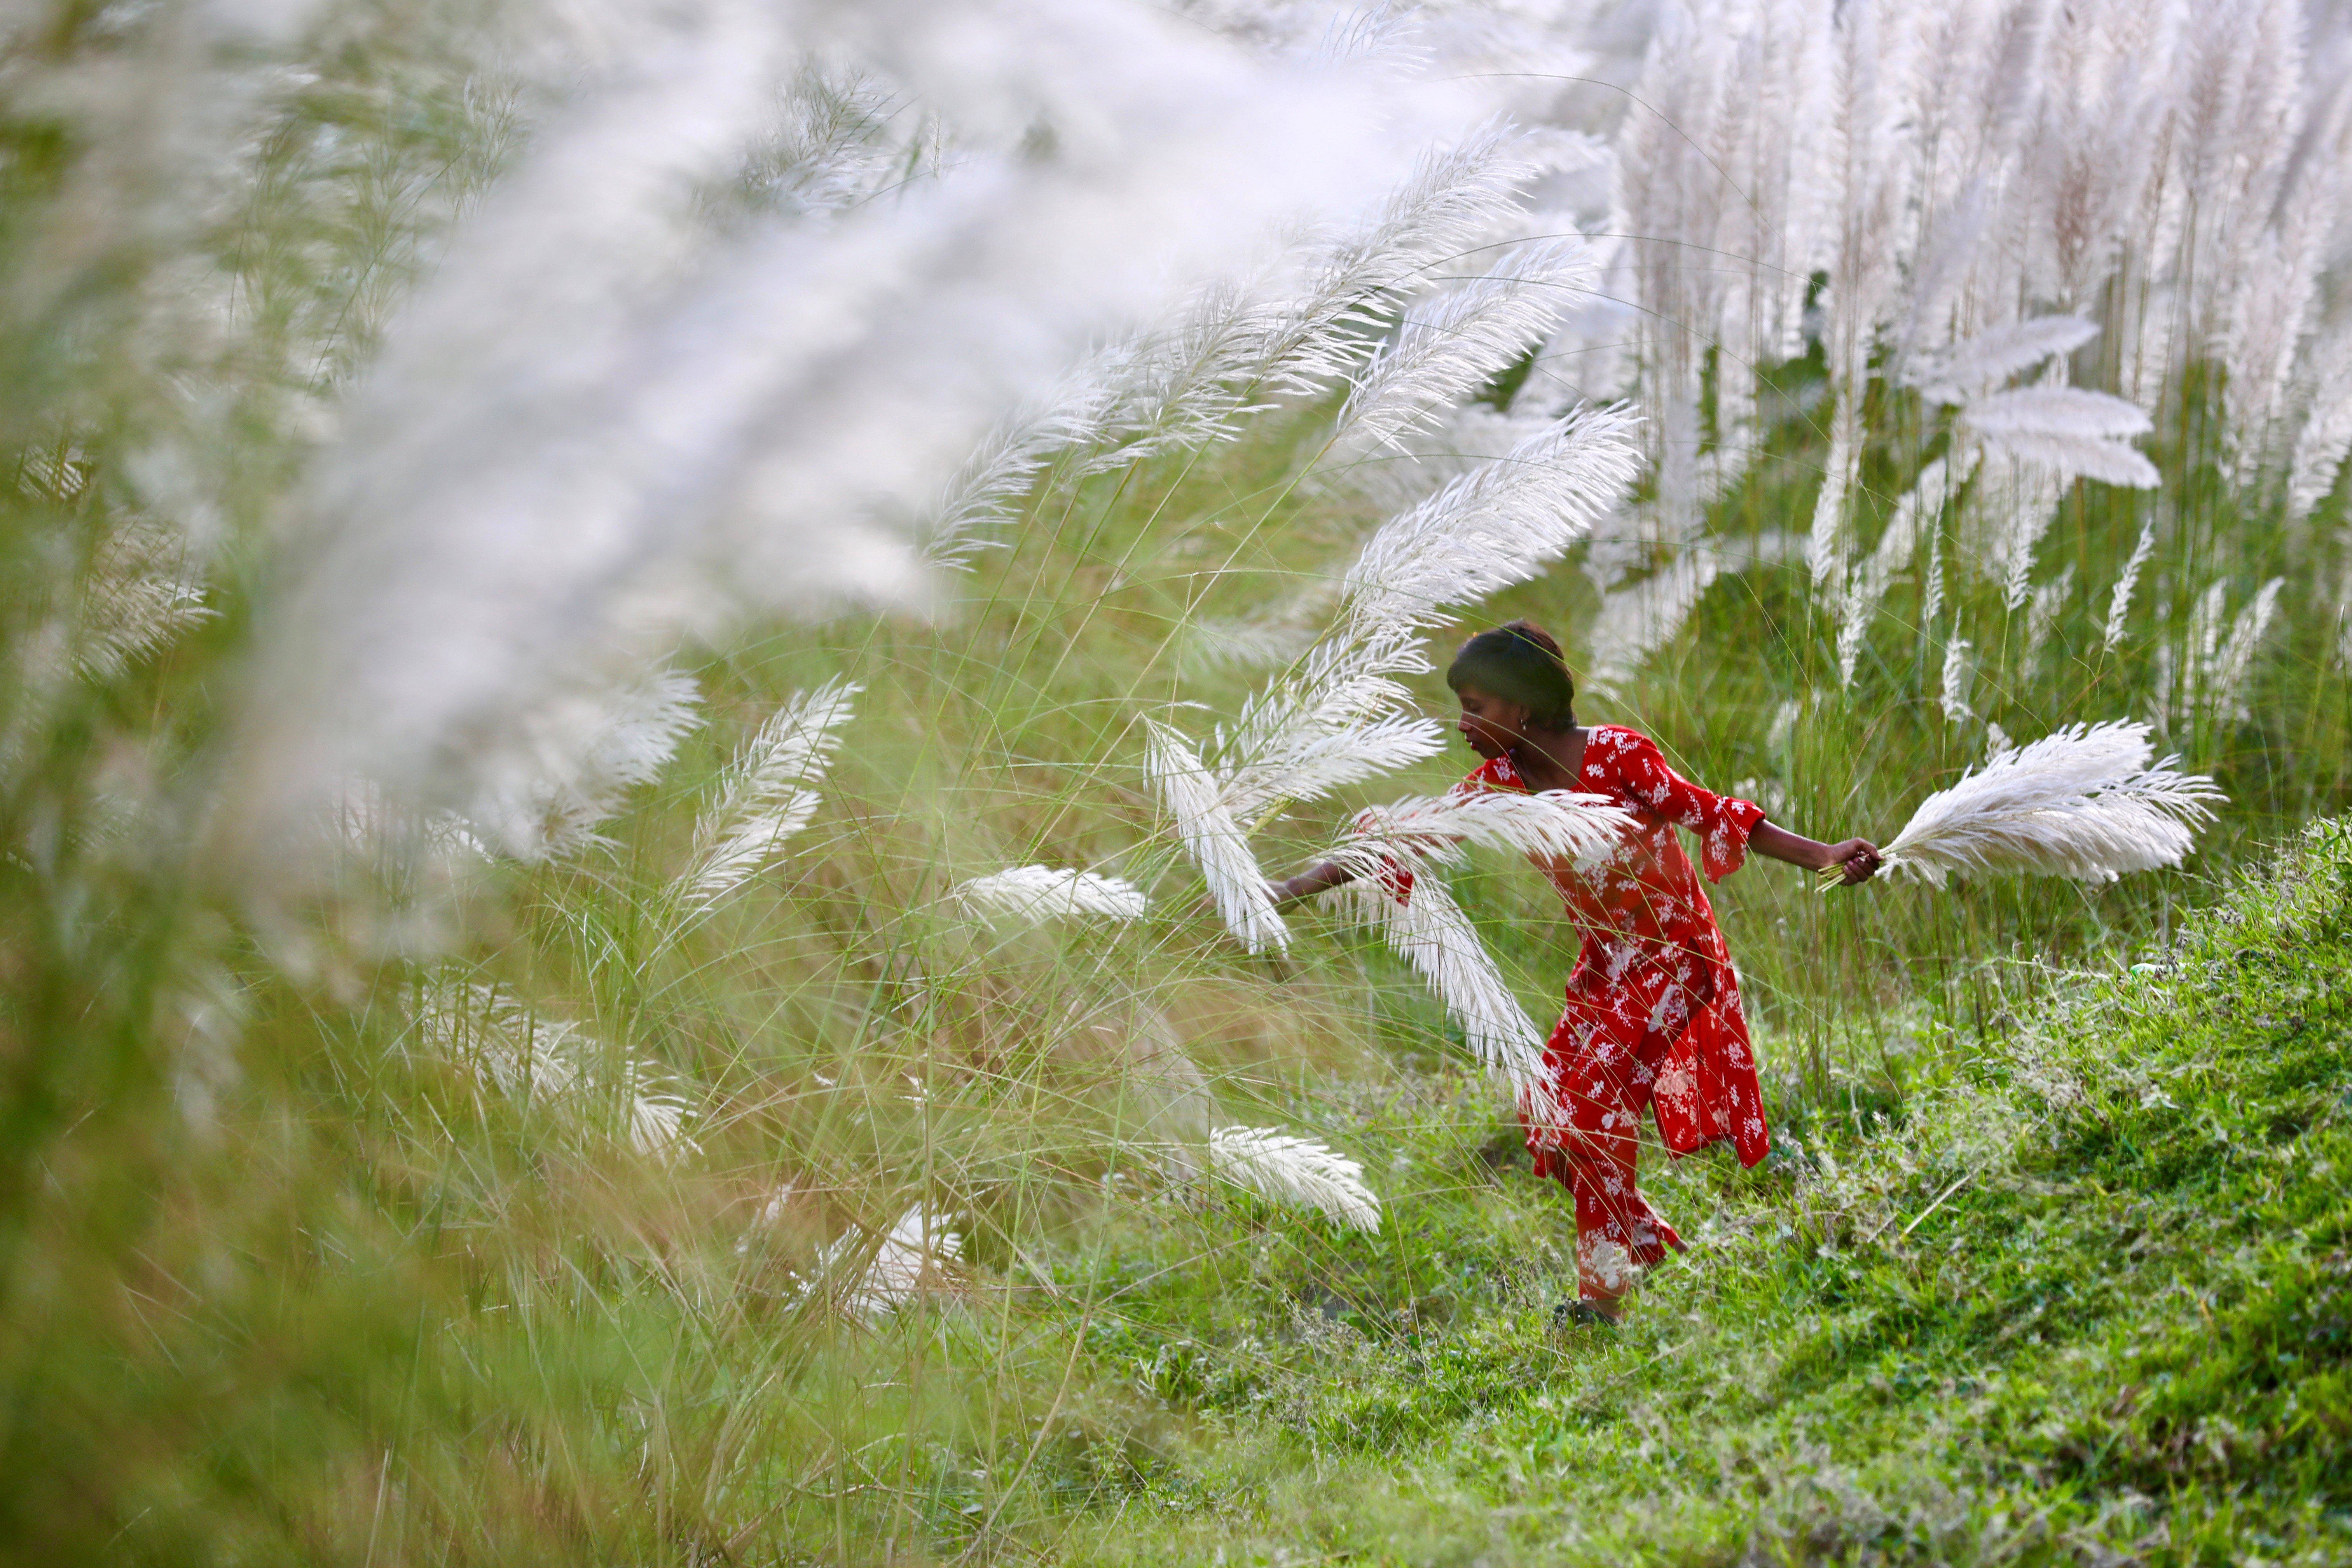 A girl picks catkins in a field amid the COVID-19 pandemic in Sarighat, on the outskirts of Dhaka, Bangladesh, October 2, 2020. REUTERS/Mohammad Ponir Hossain - RC2DAJ9TH9FJ